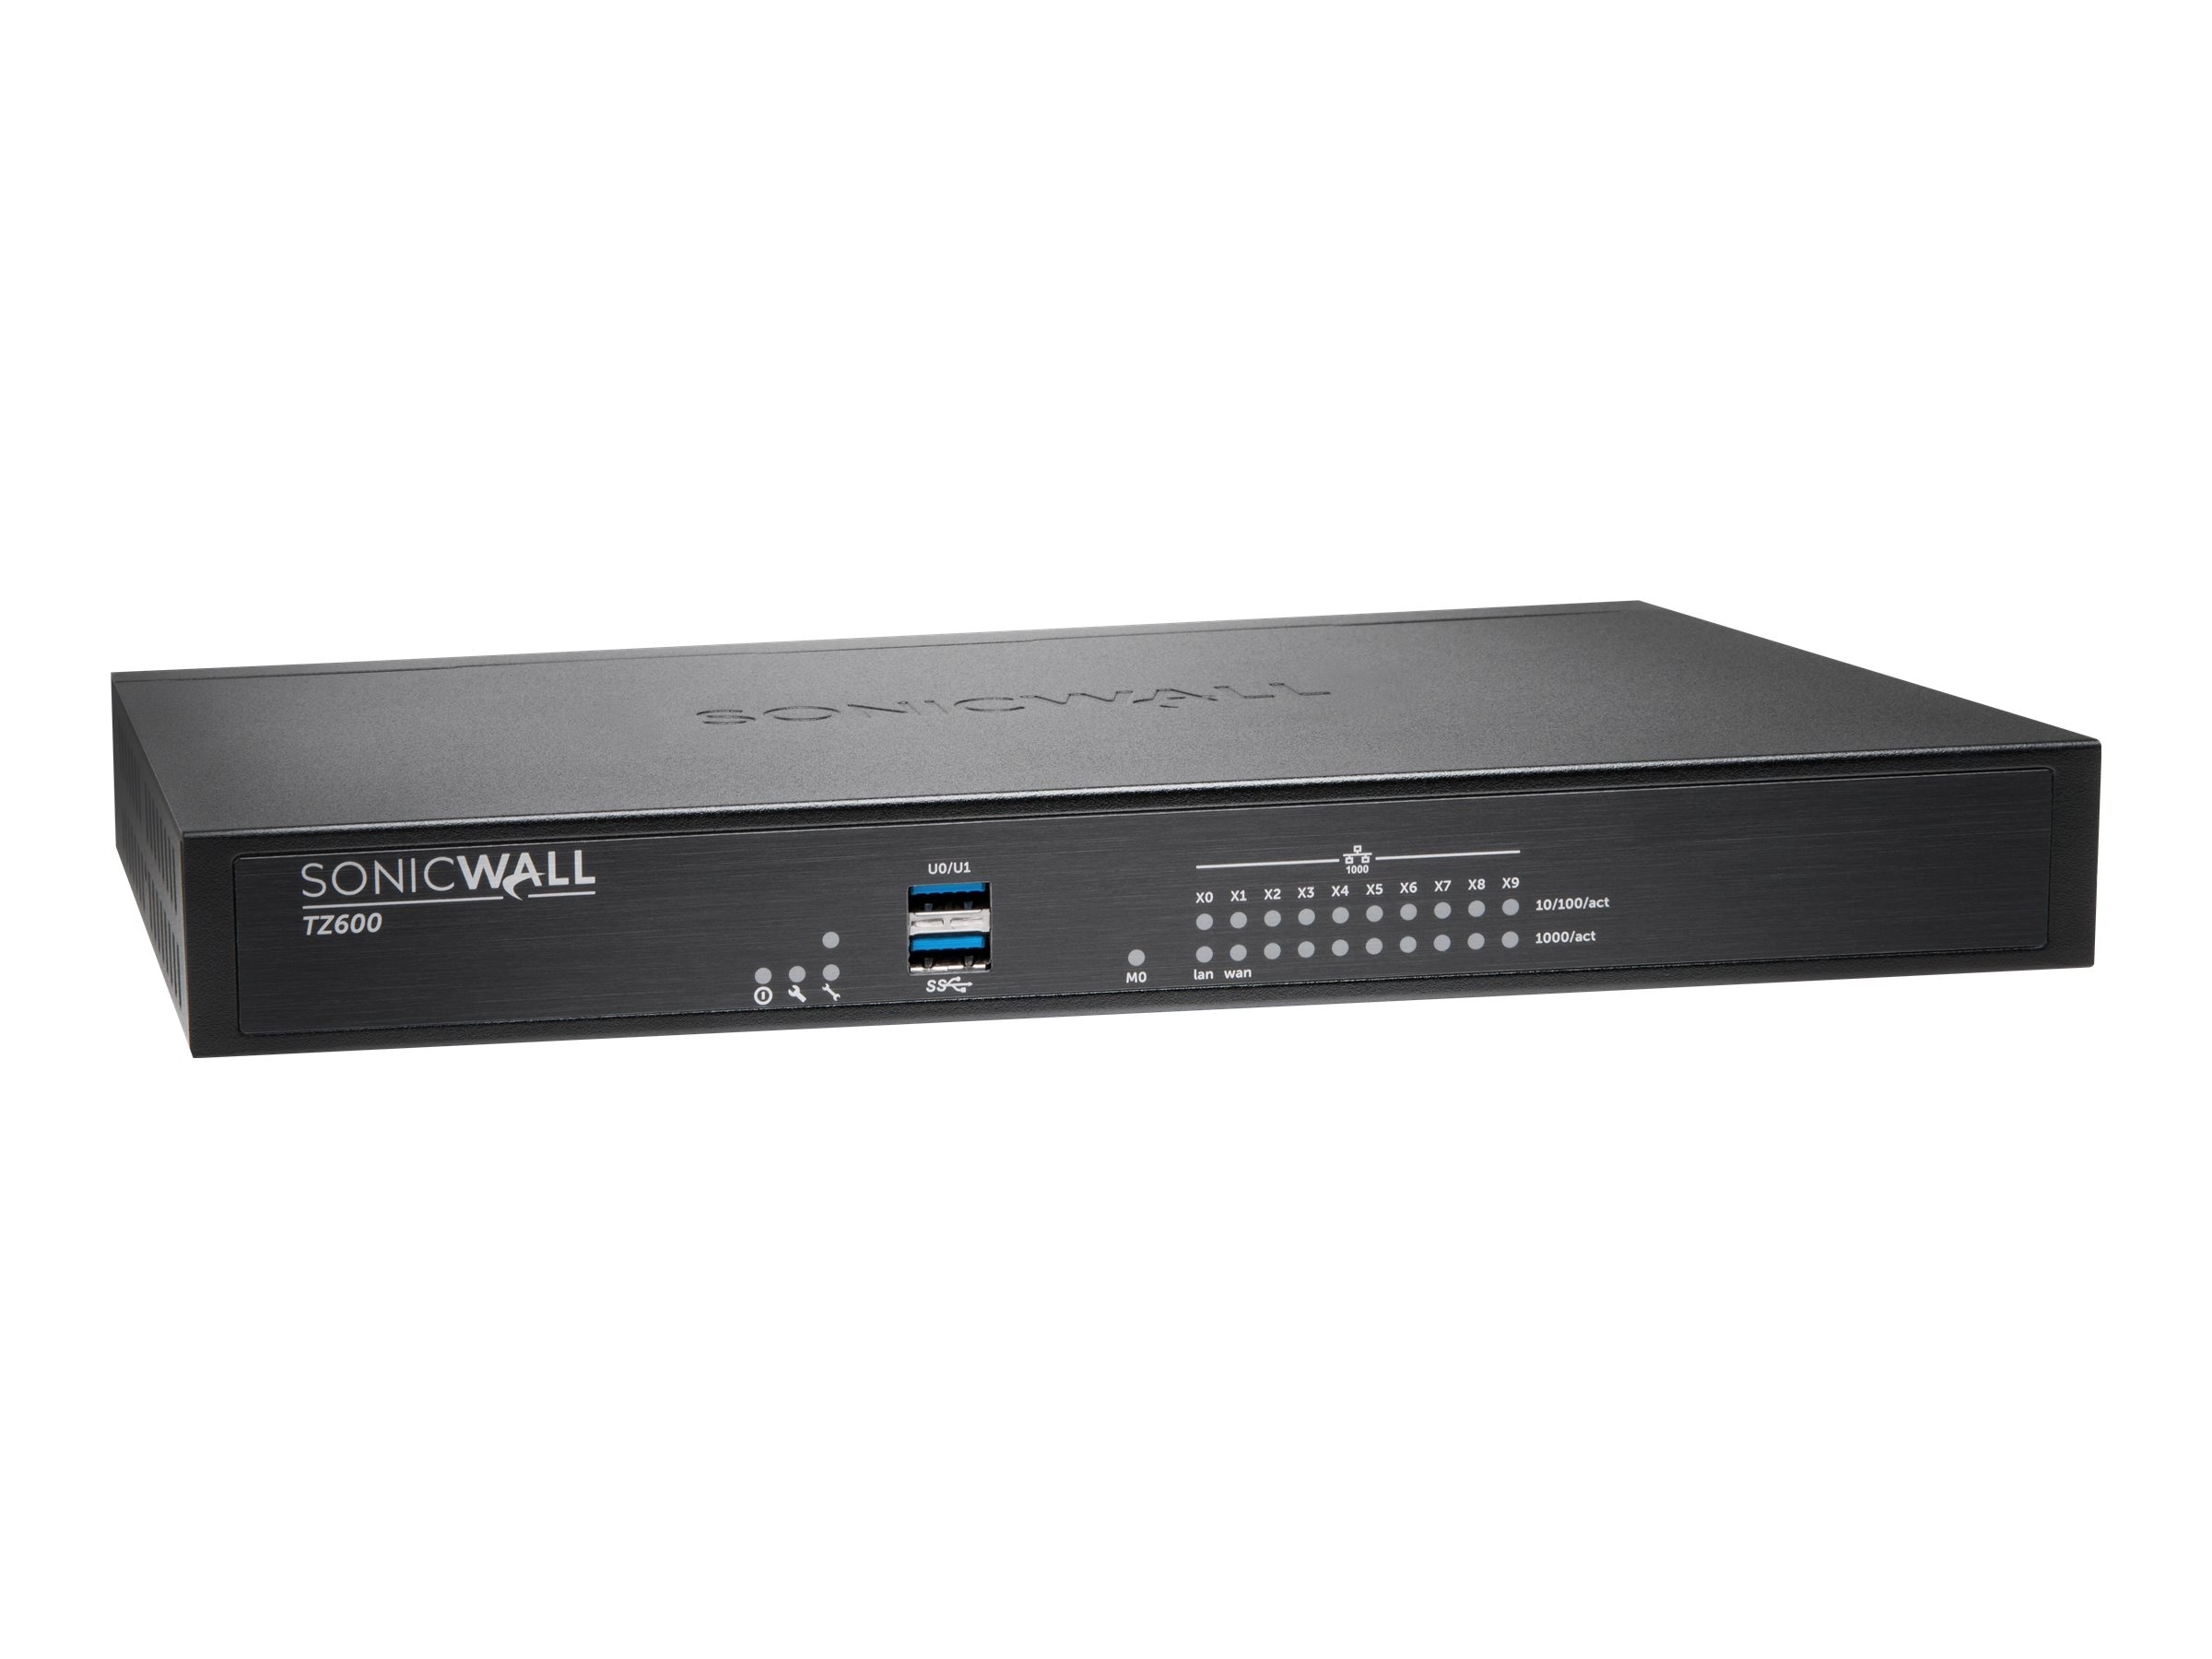 SonicWALL 01-SSC-0219 Image 3